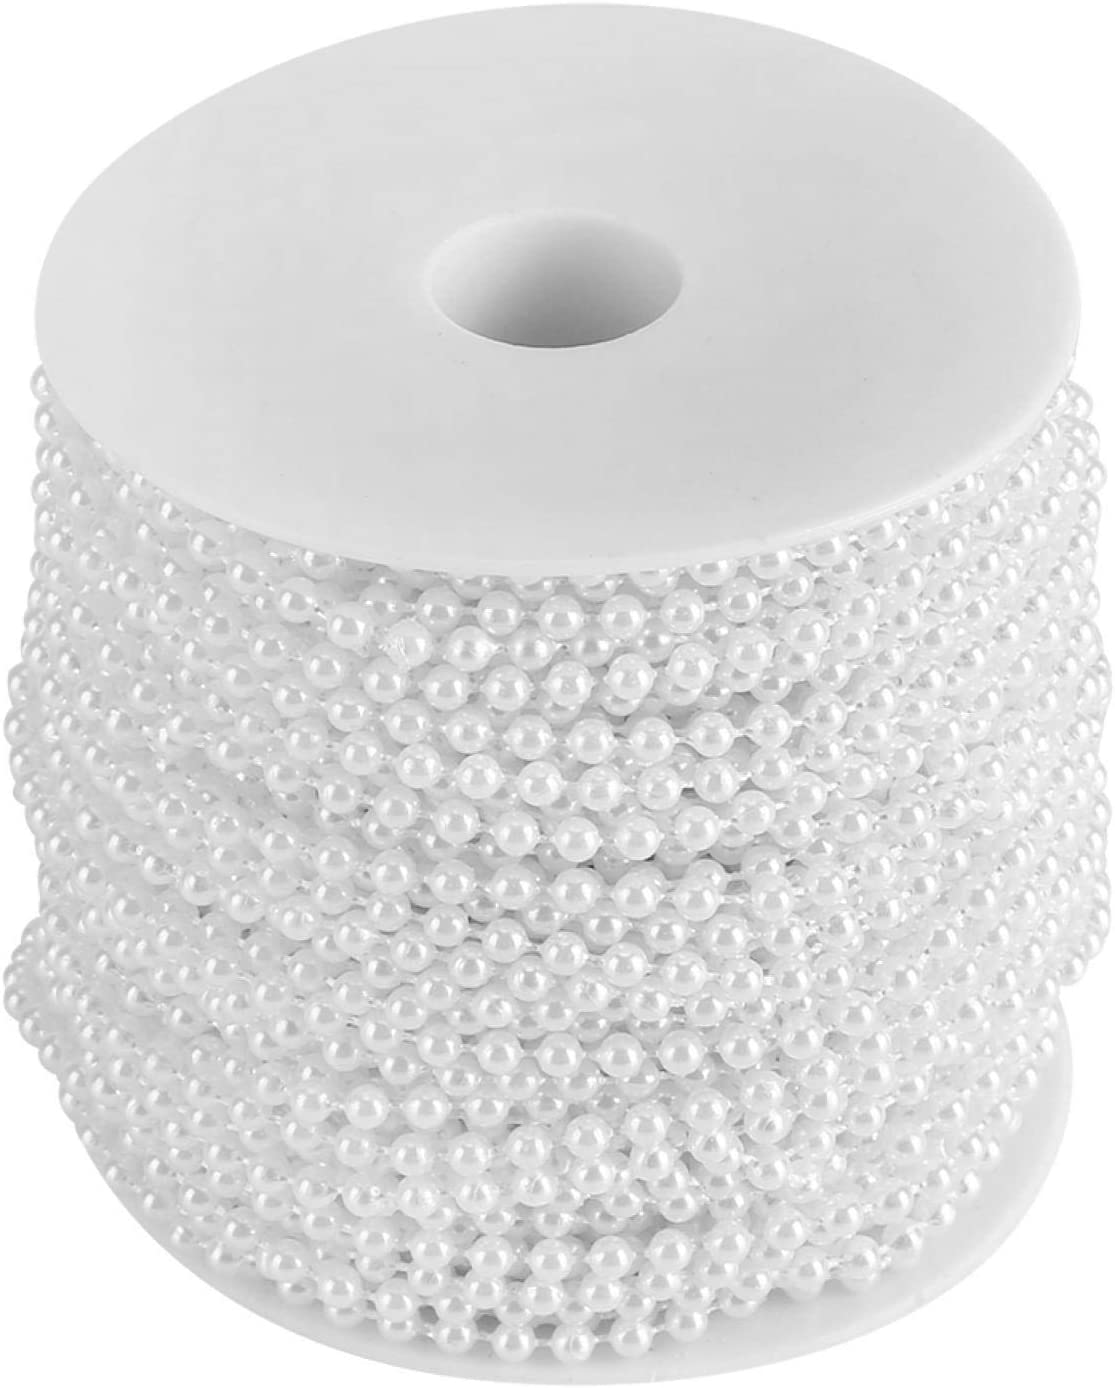 AUNMAS 40Meter/roll Length Roll Pearl String, 4mm Artificial Pearl DIY Ornaments Beads Curtain Wedding/Event/Festival Party Decor(White)